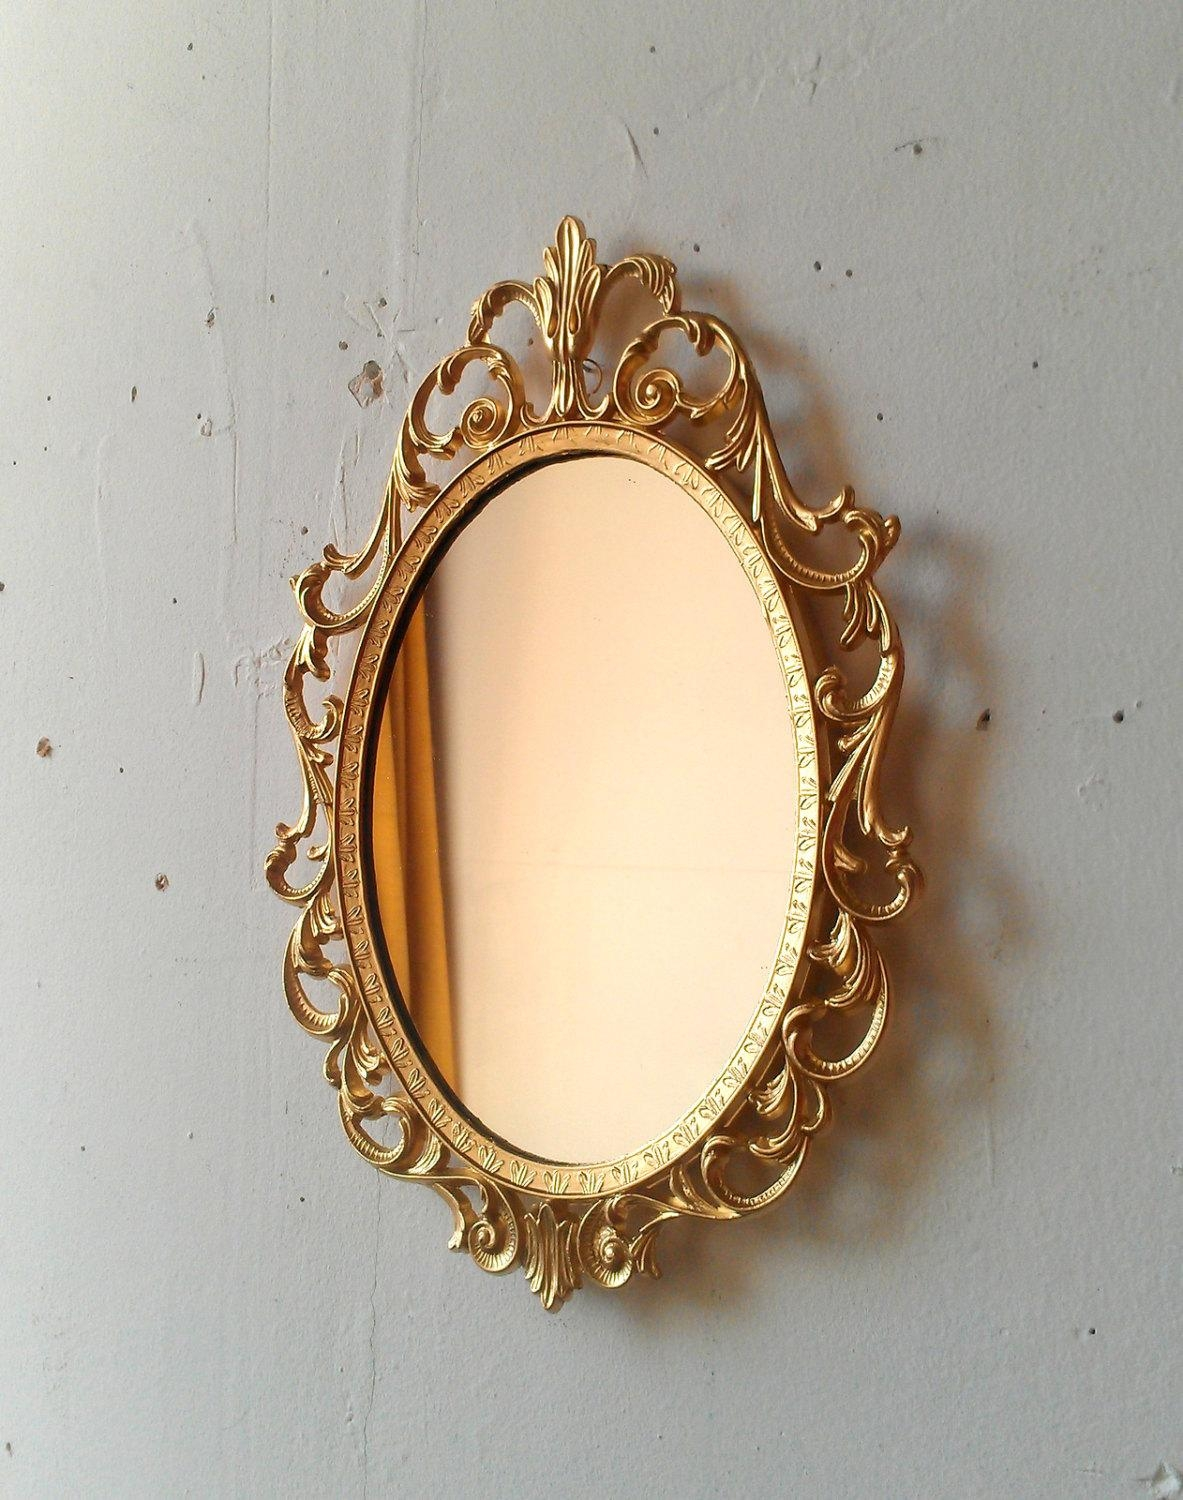 Gold Princess Mirror In Ornate Vintage Oval Frame 107 Within Ornate Oval Mirrors (Image 7 of 20)